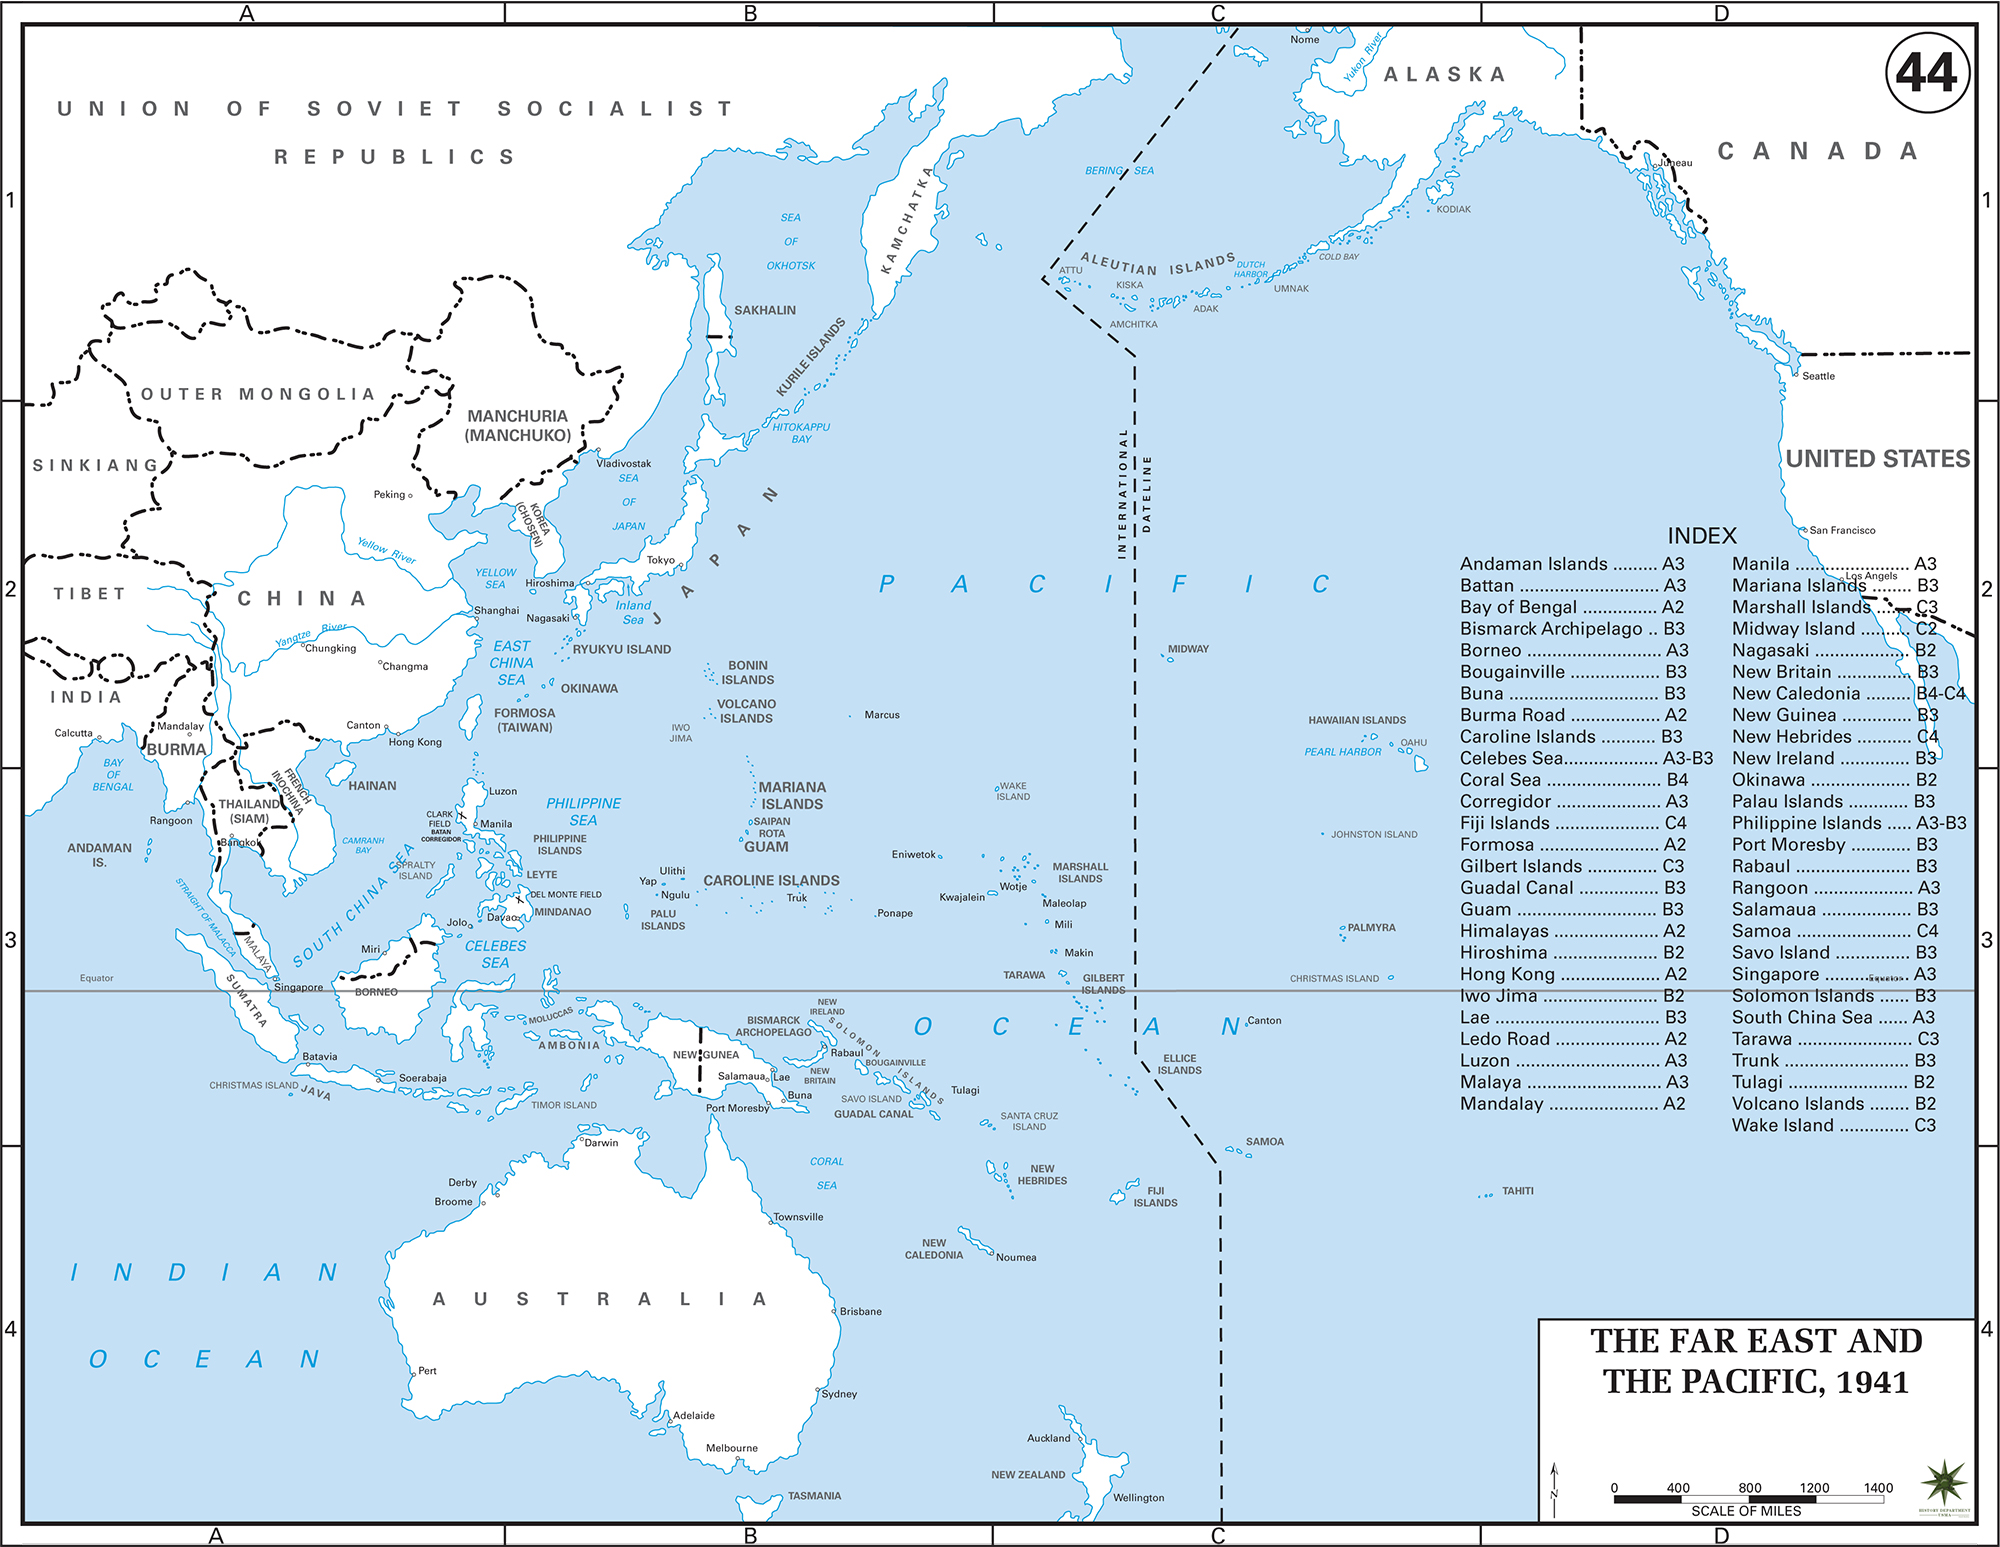 Map Of WWII The Far East And The Pacific 1941